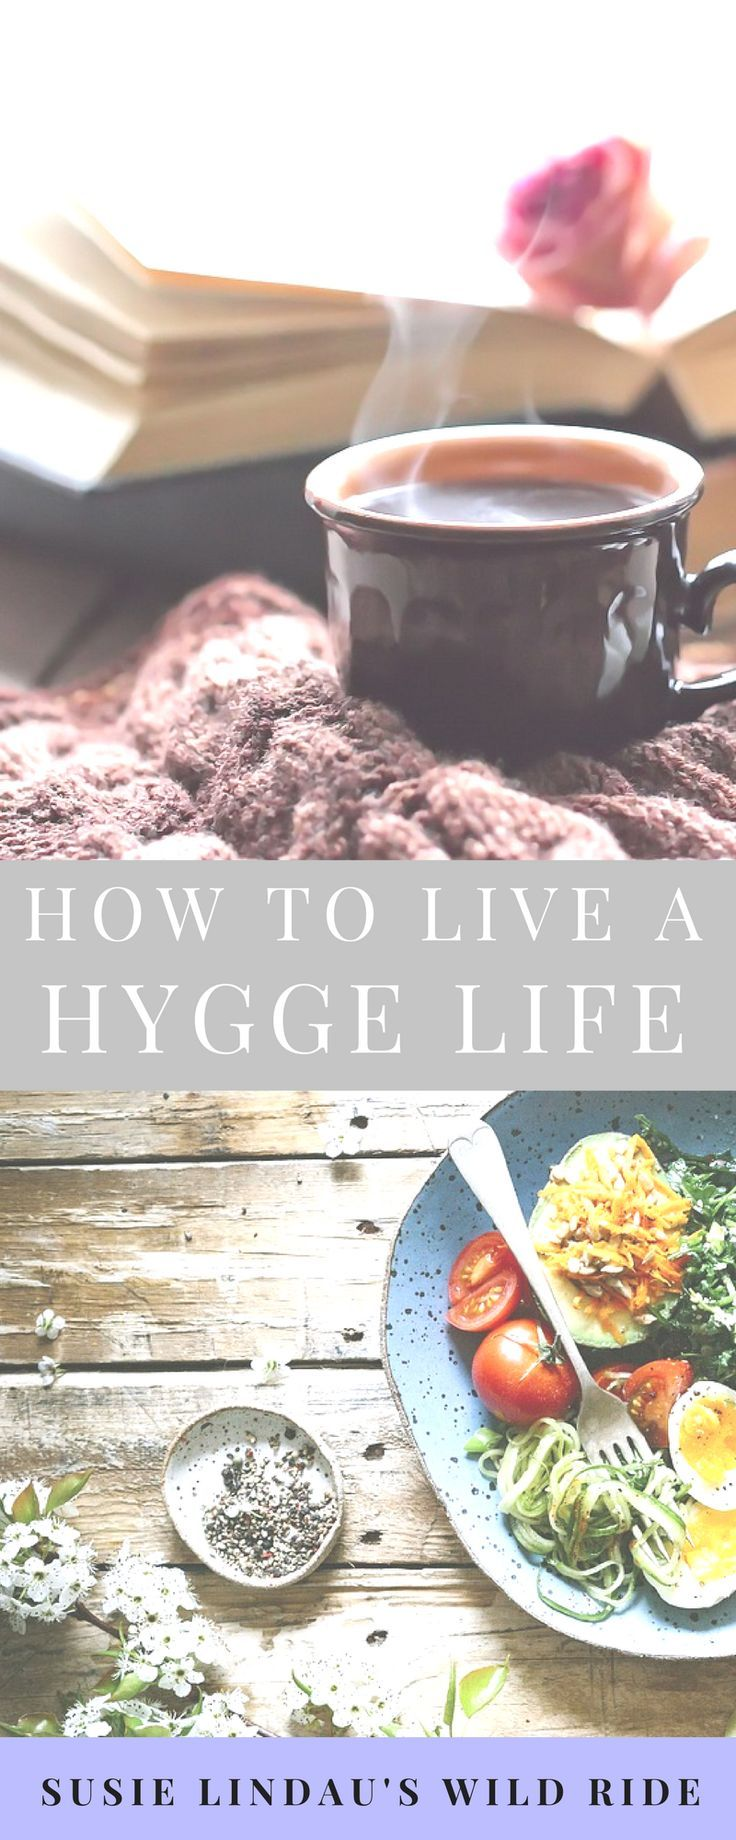 How to live a Hygge life - adopting daily Hygge habits and lifestyle.   #hygge #selfcare #relaxation #lifestyle